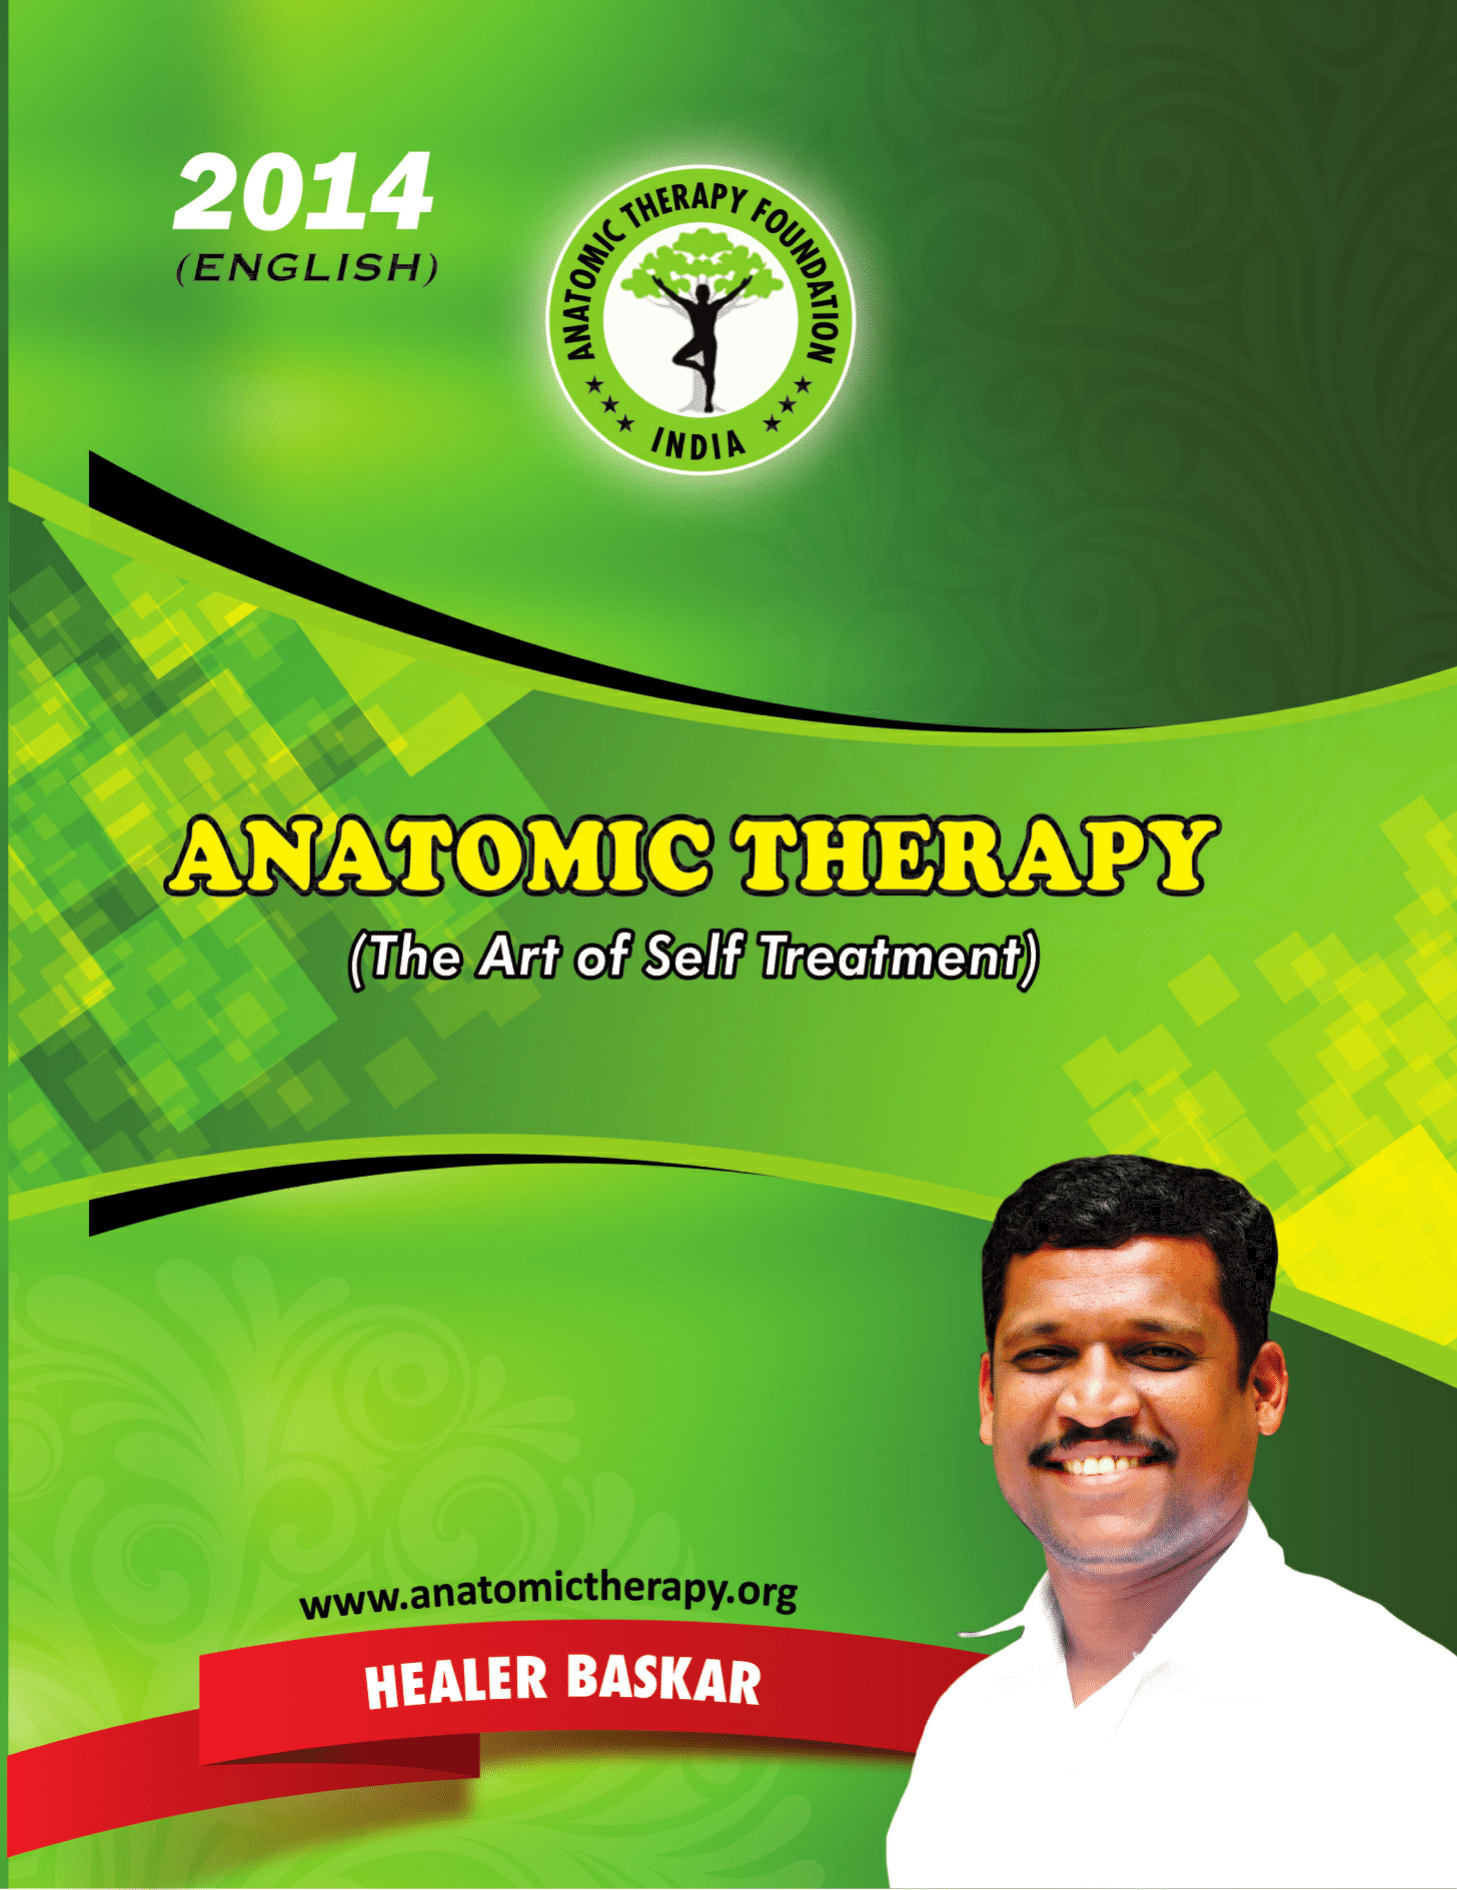 Anatomic Therapy - The Art of Self Treatment | Healer Baskar